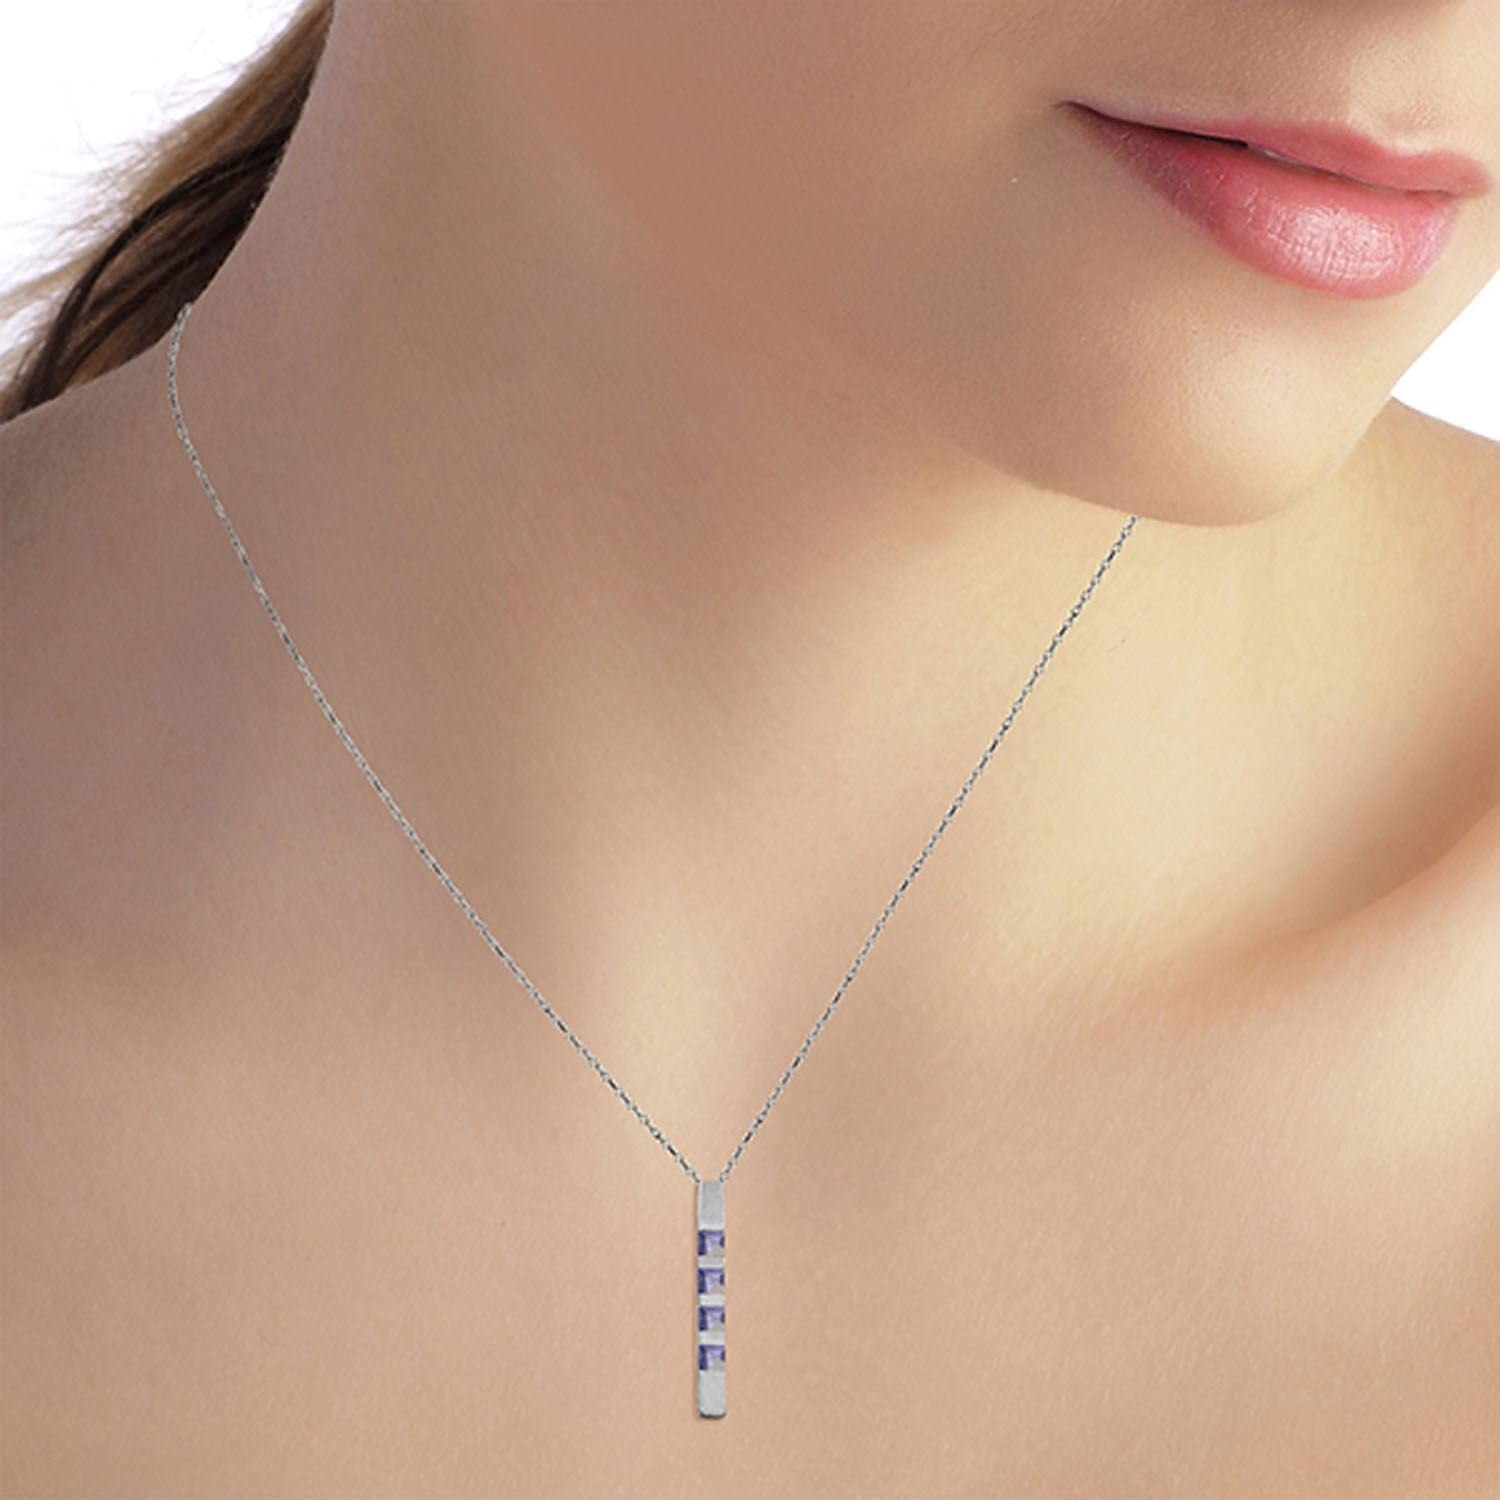 ALARRI 0.35 Carat 14K Solid White Gold Necklace Bar Natural Tazanites with 20 Inch Chain Length